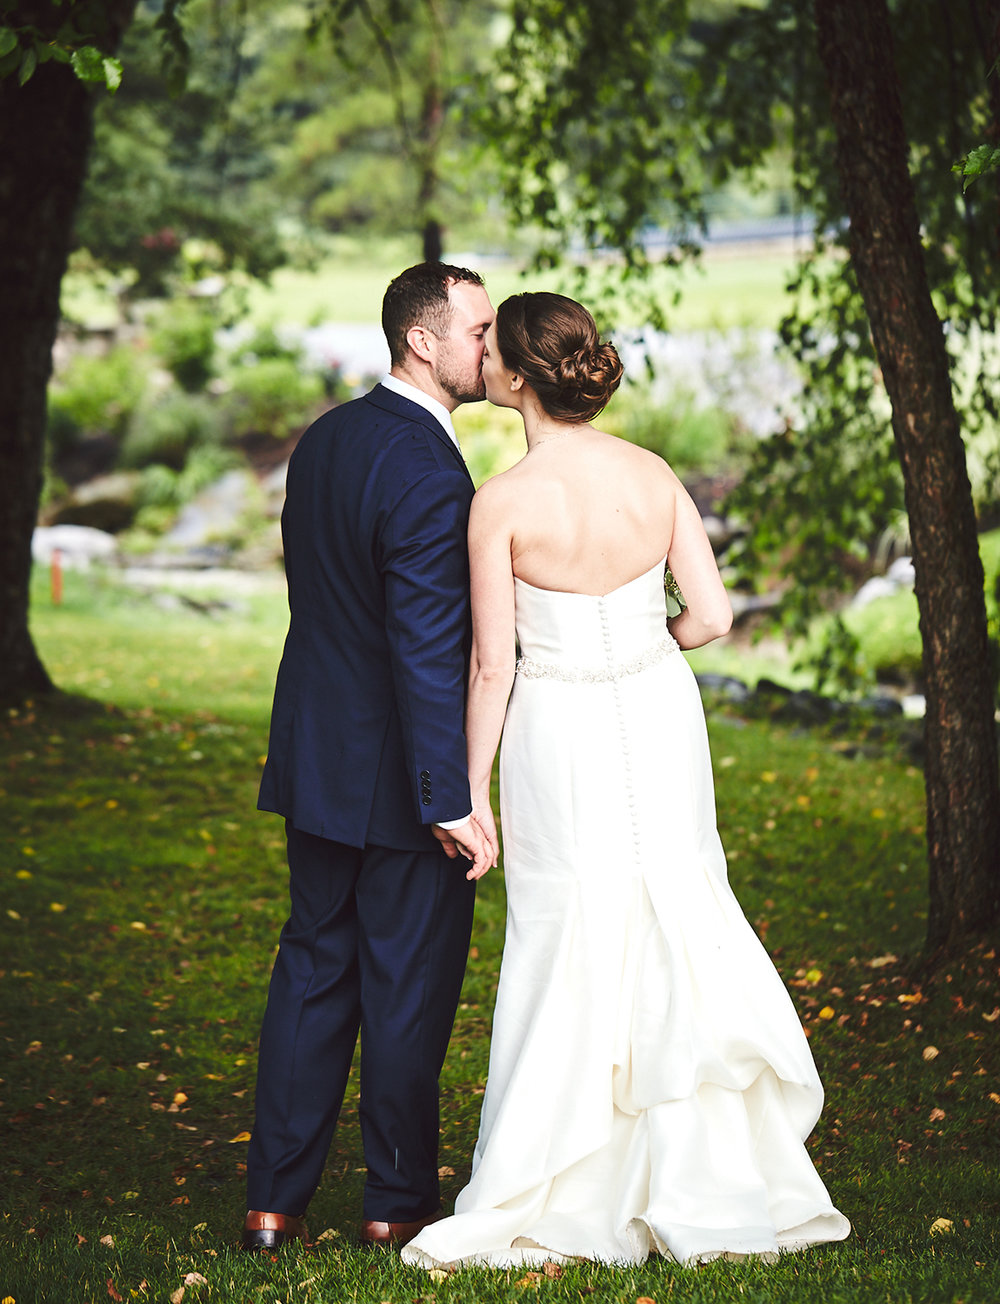 180714_HolidayValleyLodgeWeddingPhotography_By_BriJohnsonWeddings_0111.jpg